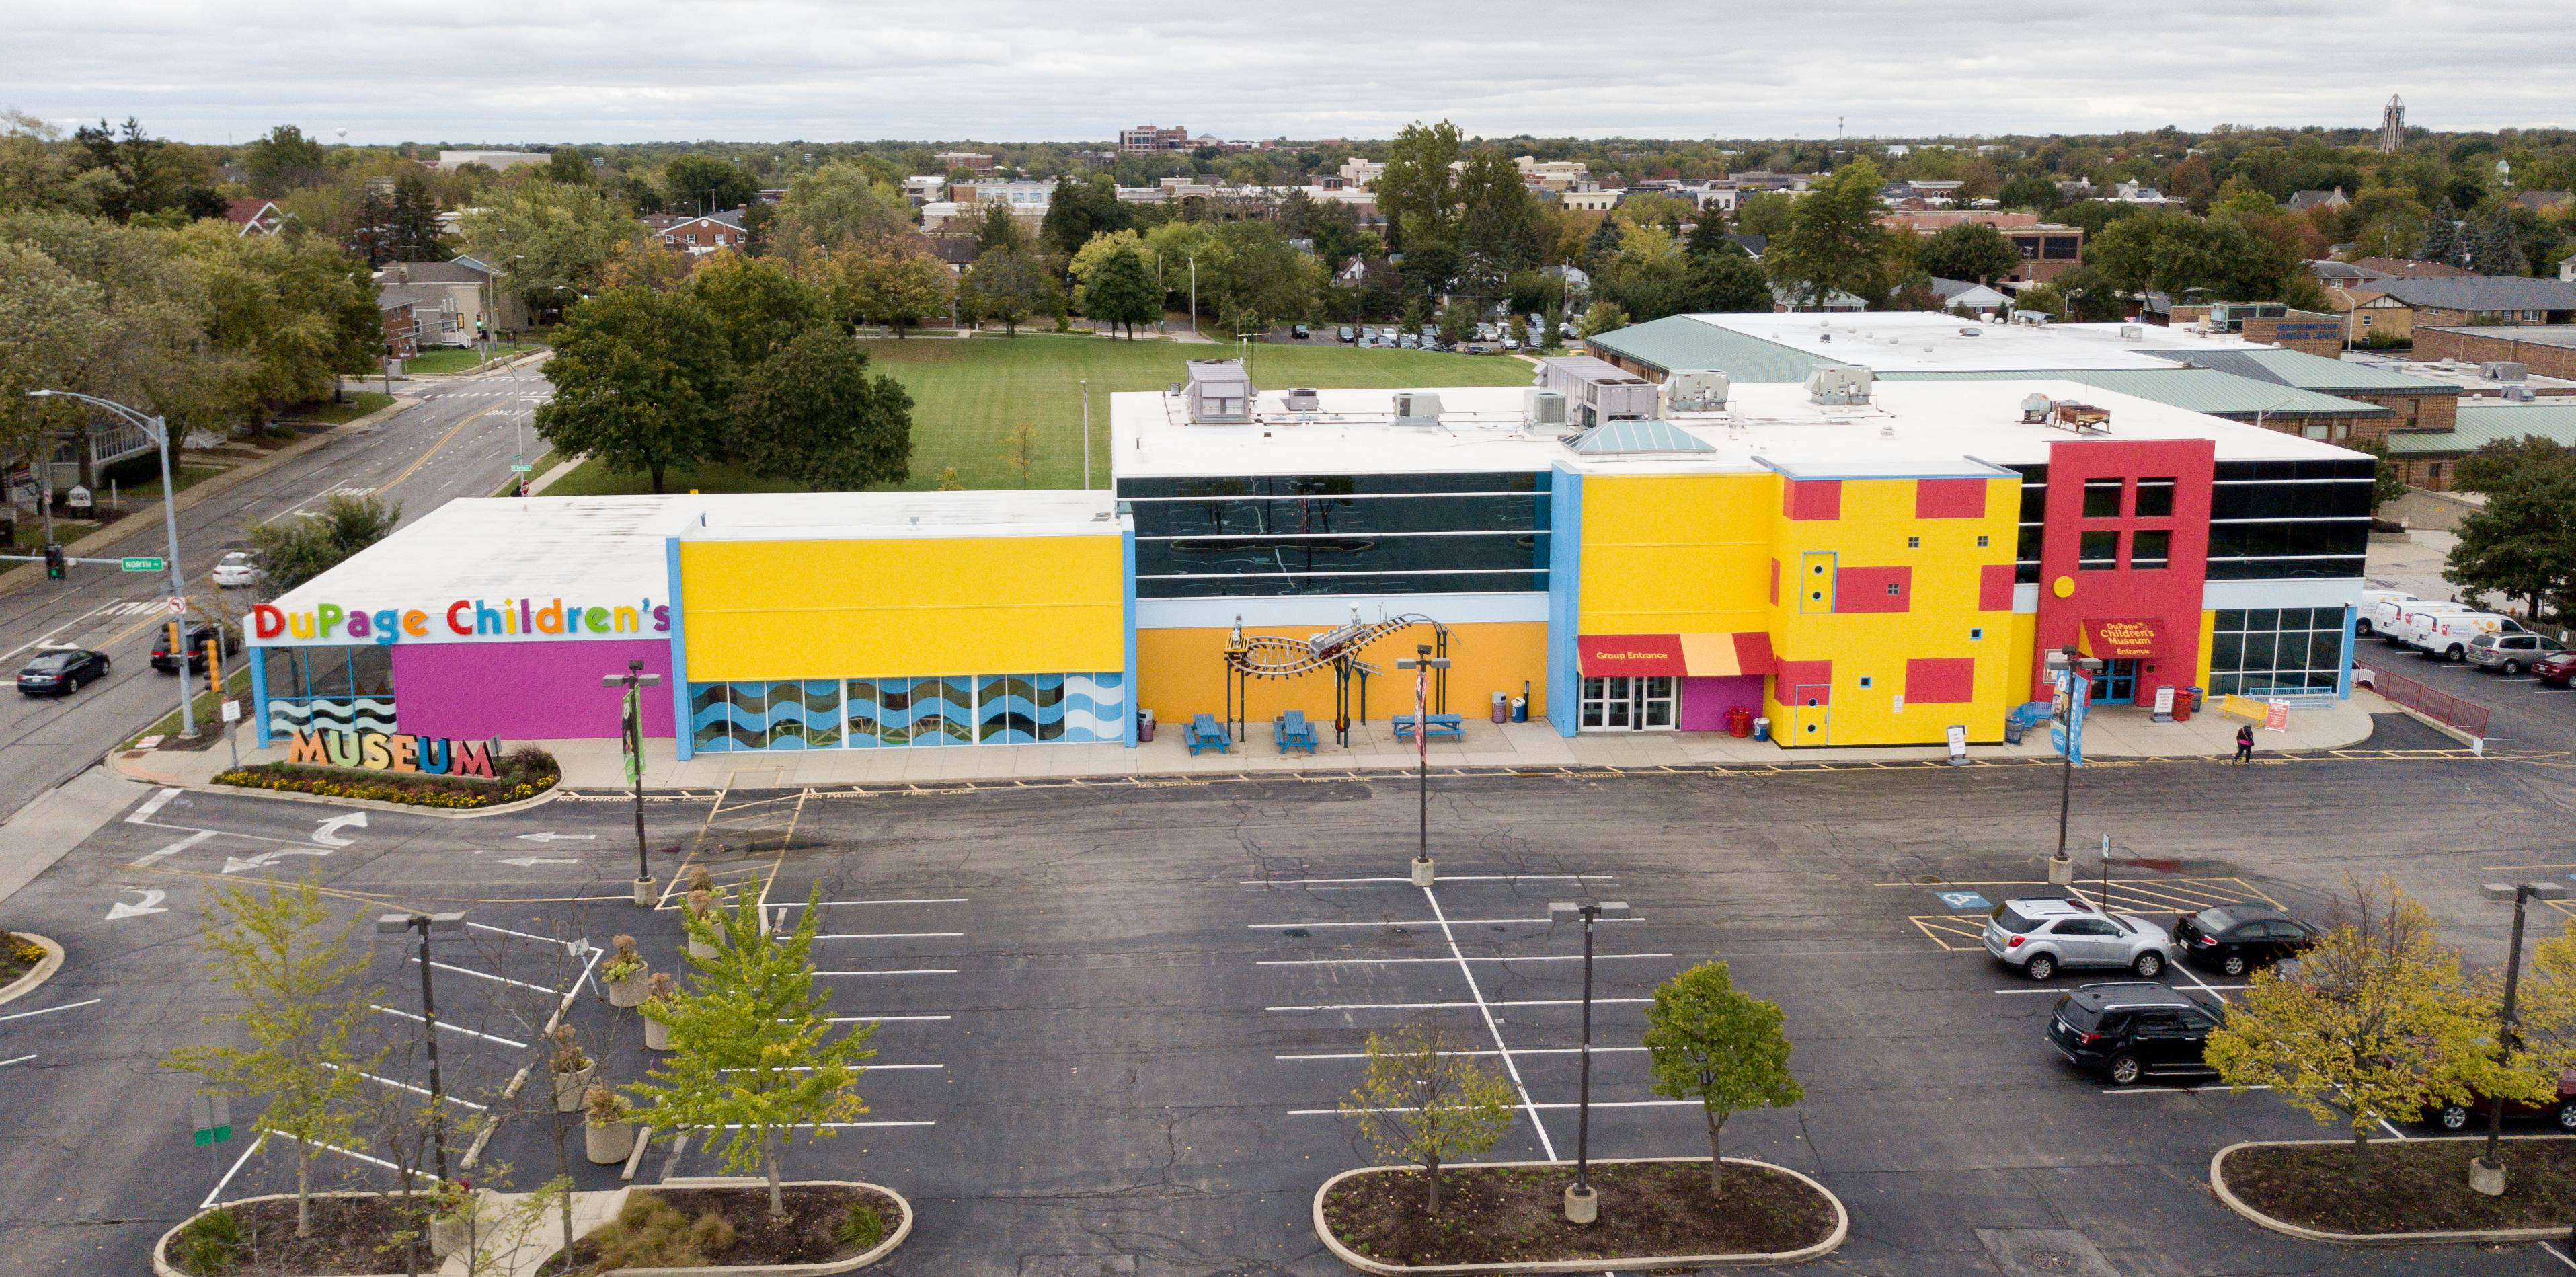 The DuPage Children's Museum's property at 301 N. Washington St. in Naperville is among city-owned land included as part of a redevelopment project along 5th Avenue near the train station. The museum could stay there, with new uses built around it, or officials could decide to move it to one of four other sites in town.